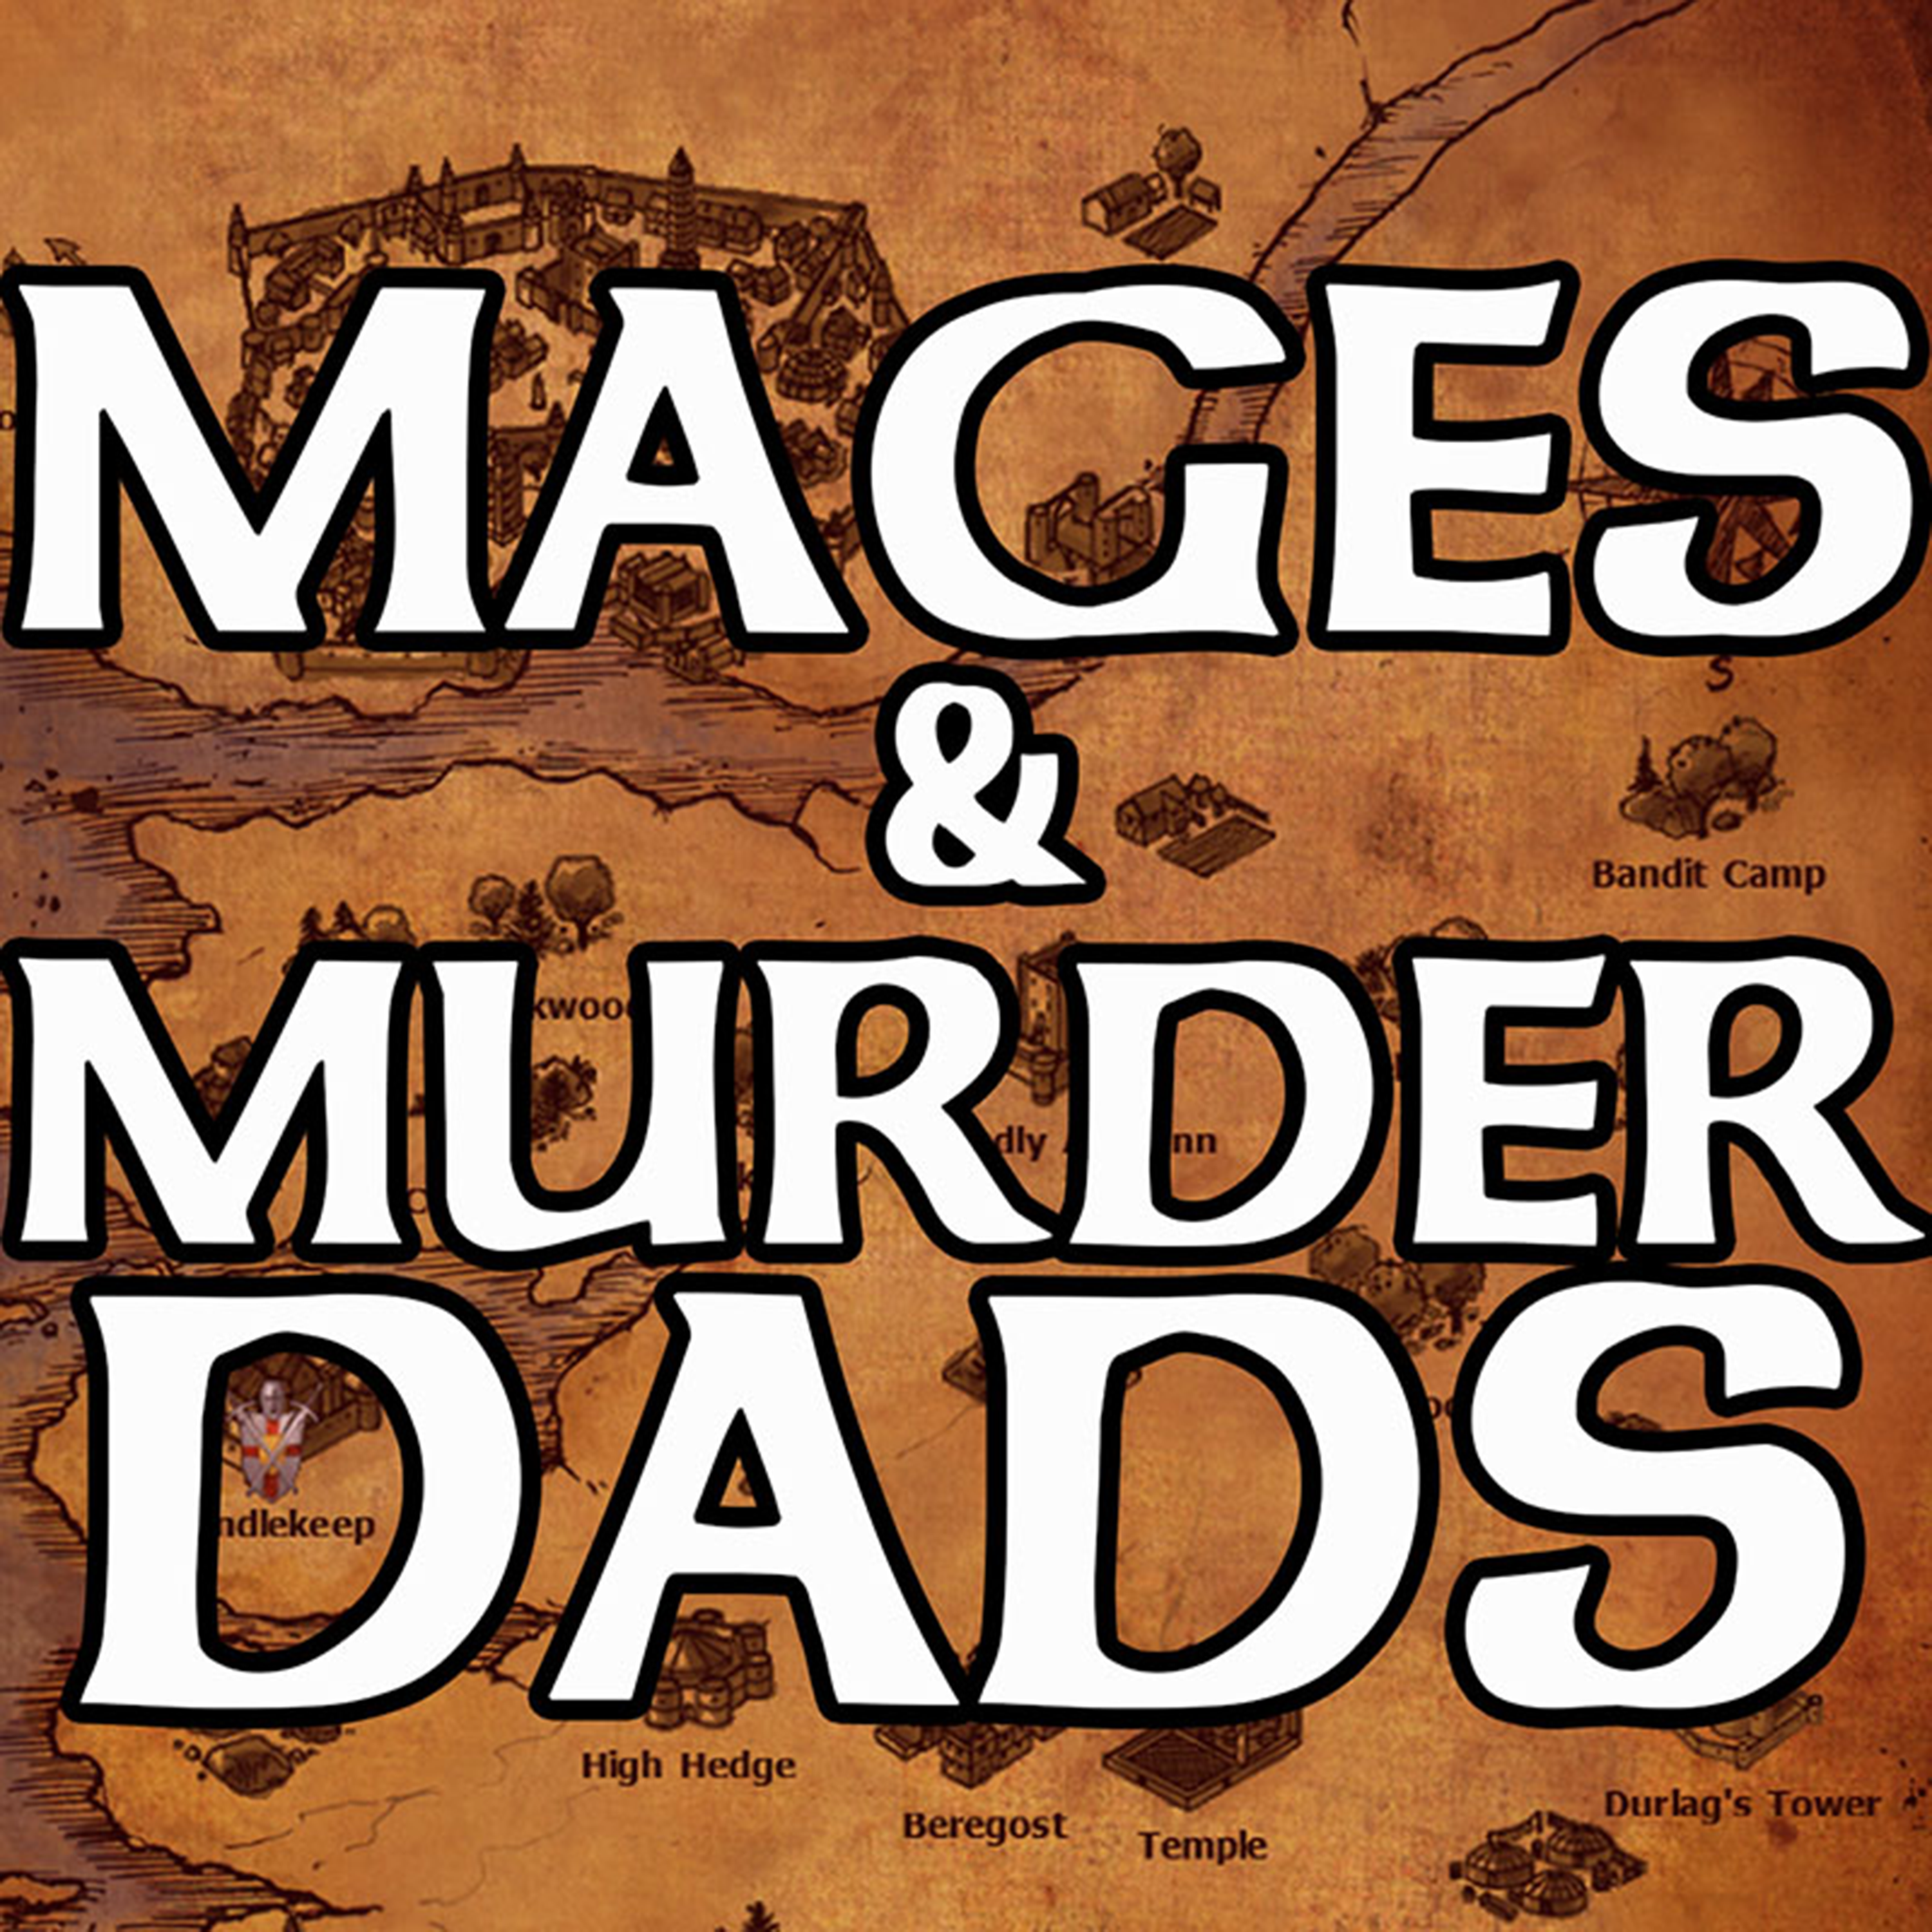 Mages & Murderdads